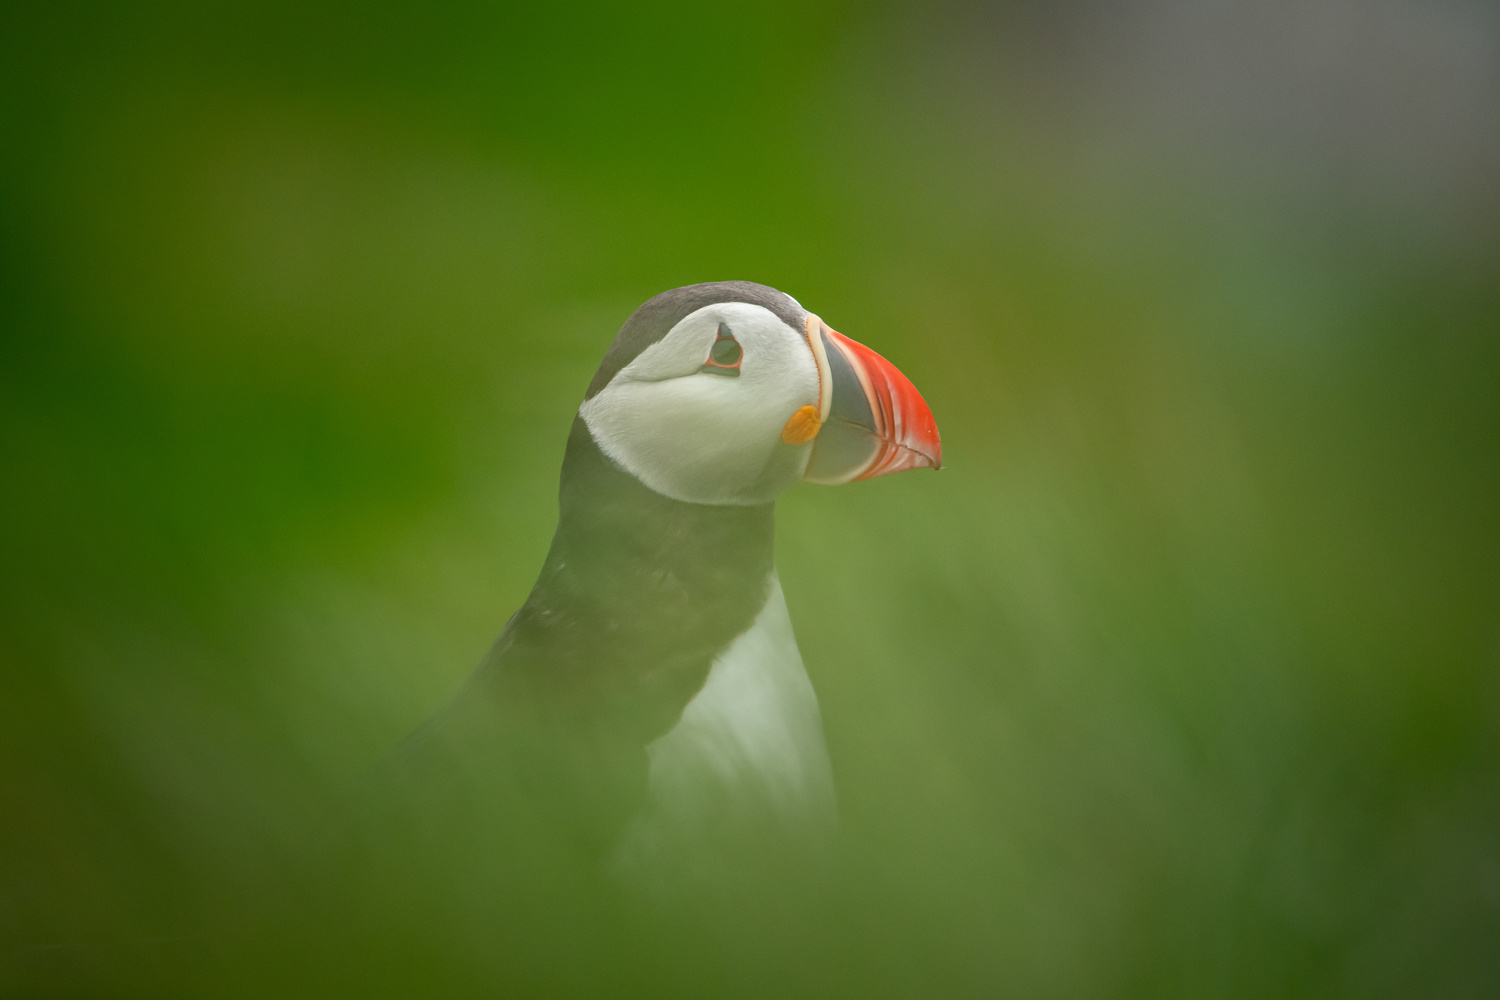 Puffin hiding in the grass. by Annelin Hoff